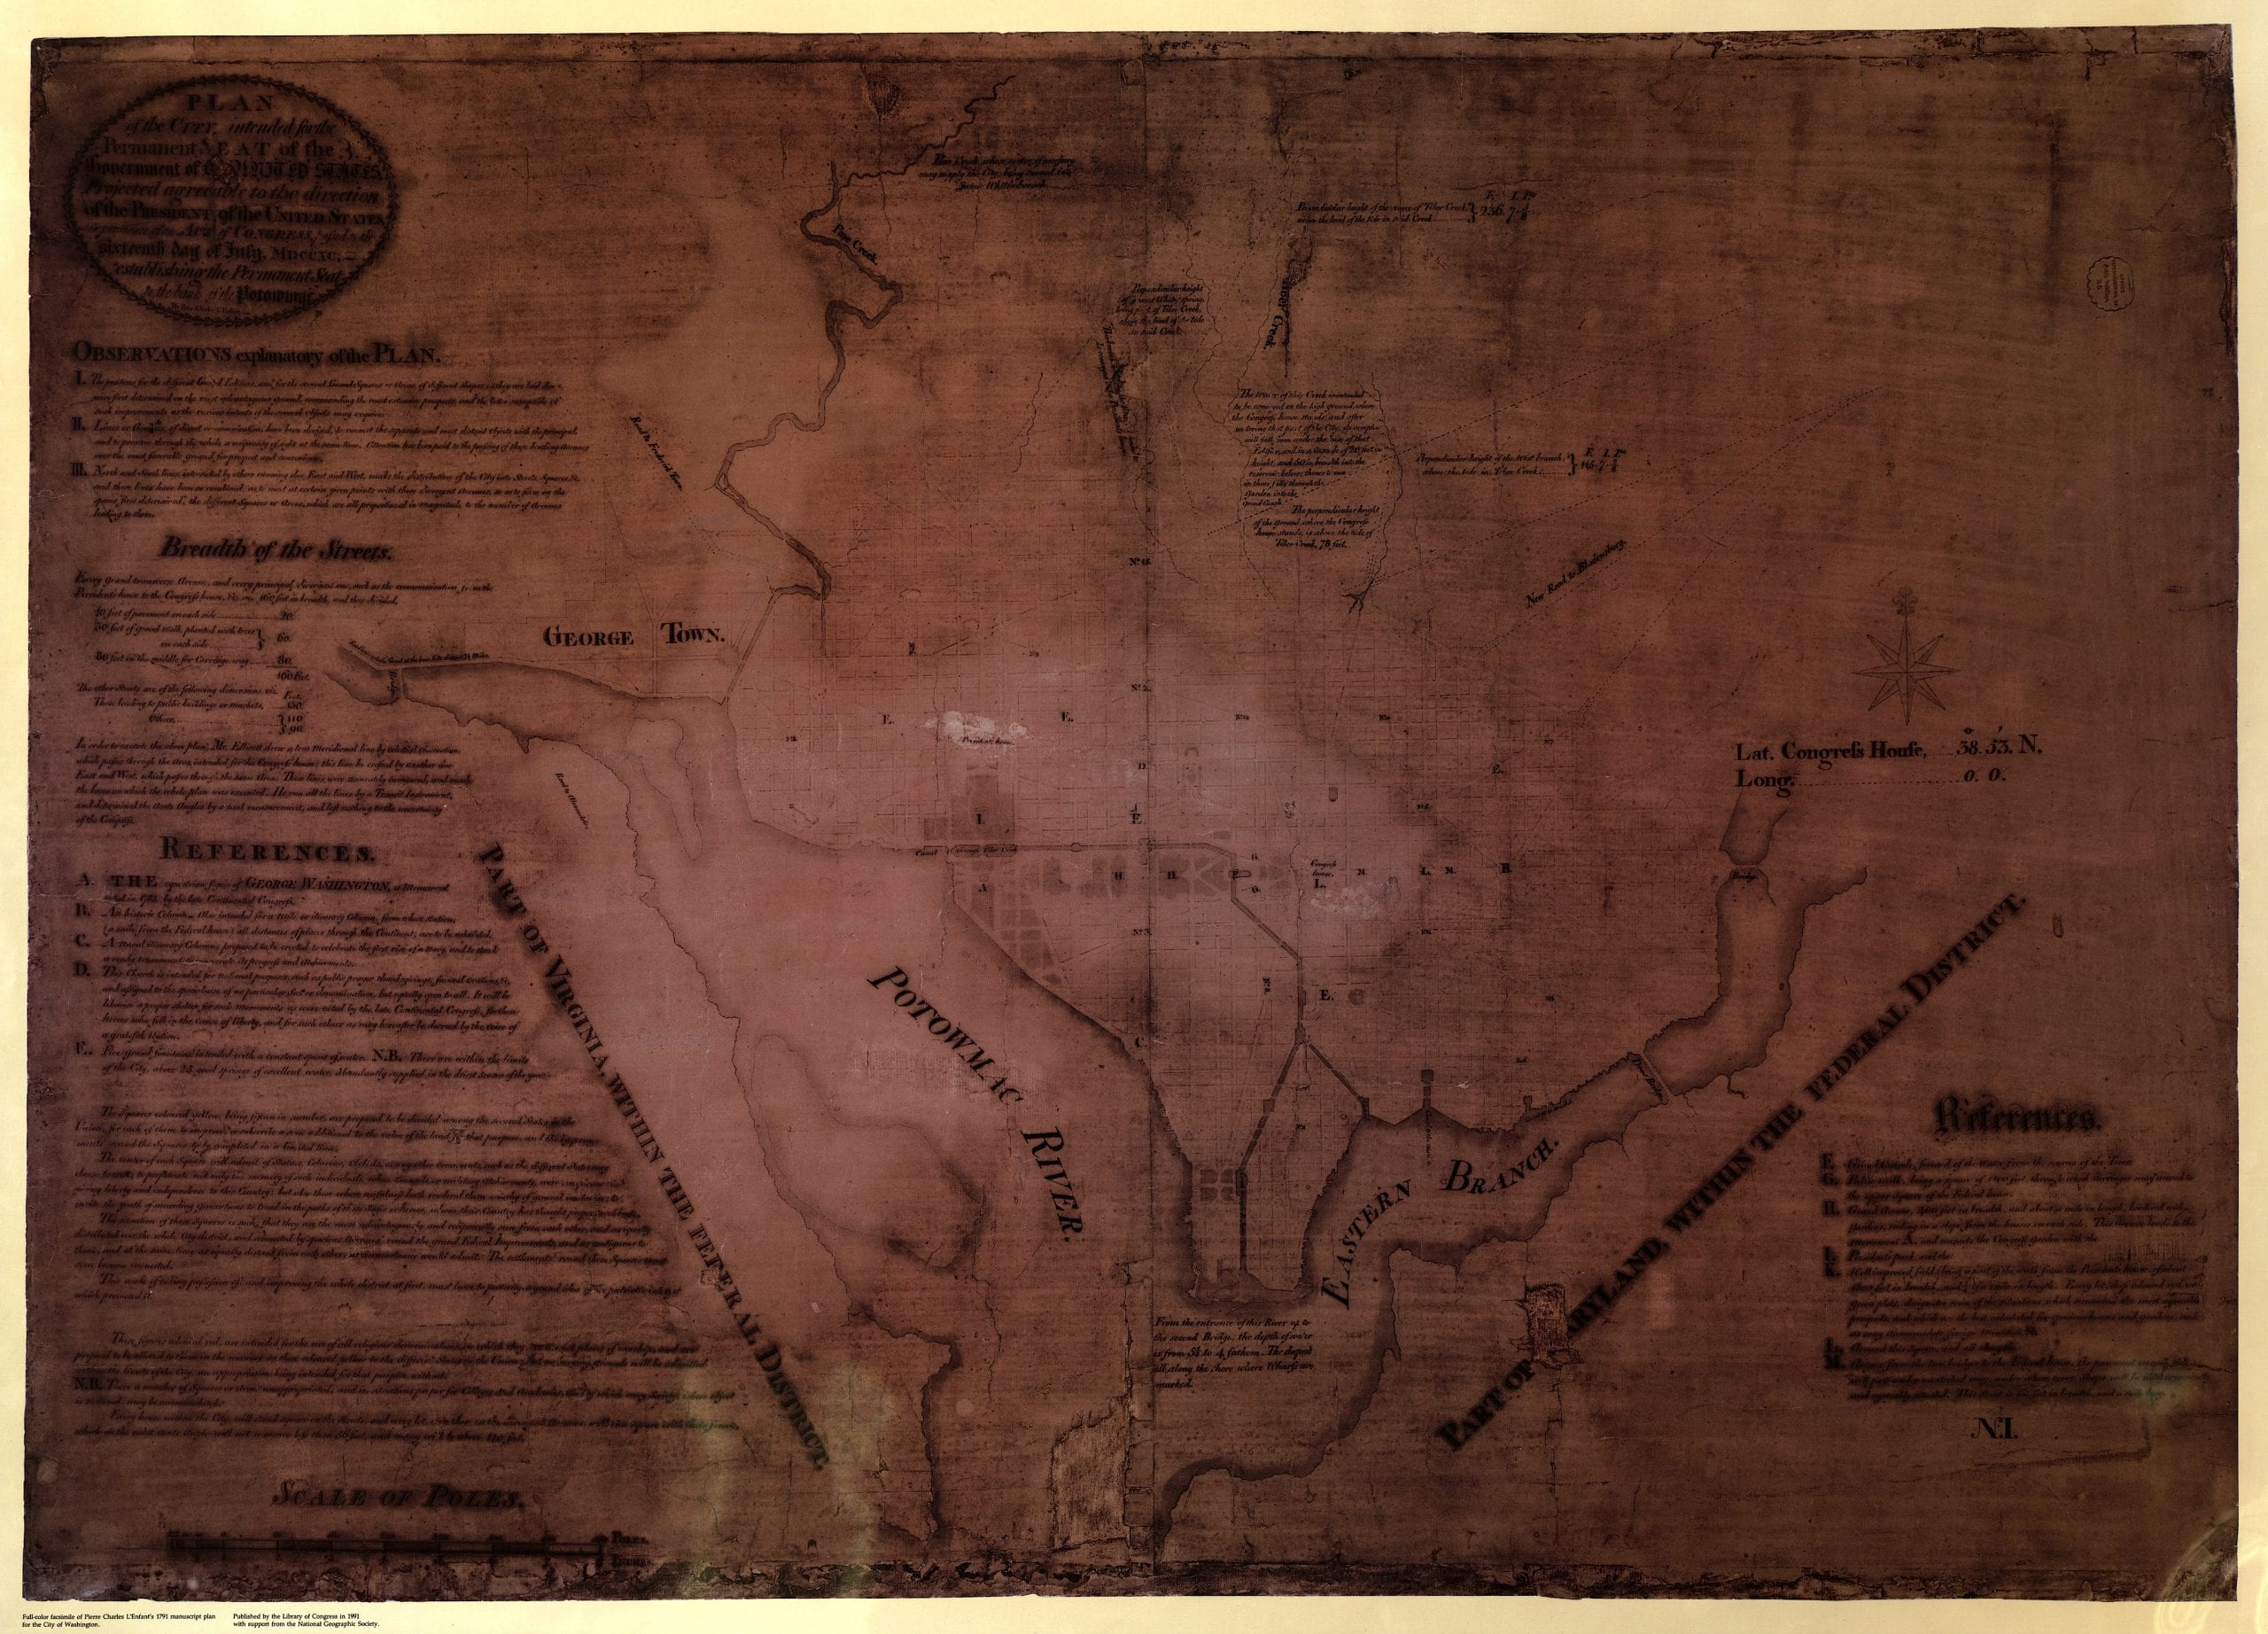 "Plan of the city intended for the permanent seat of the government of t[he] United States : projected agreeable to the direction of the President of the United States, in pursuance of an act of Congress, passed on the sixteenth day of July, MDCCXC, ""establishing the permanent seat on the bank of the Potowmac"""